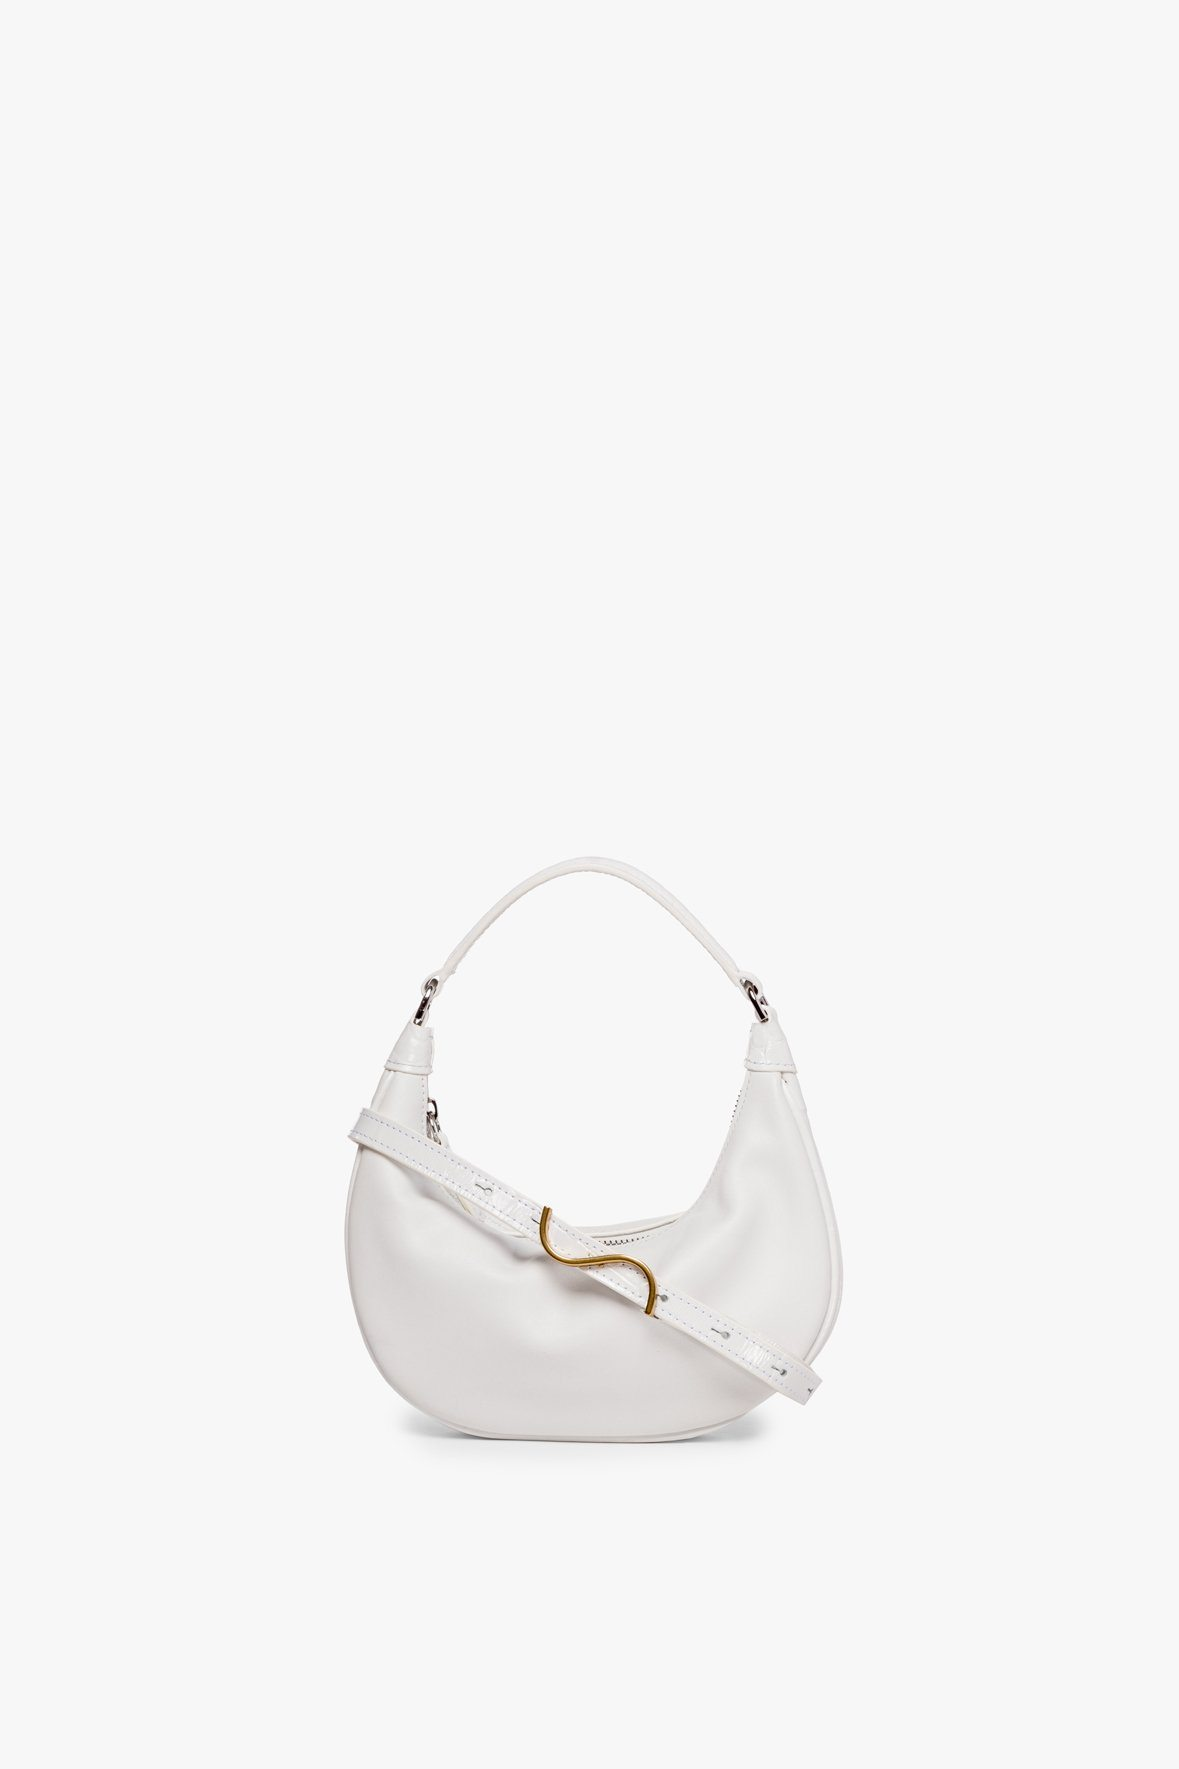 MINI SASHA CROSSBODY FRESH WHITE